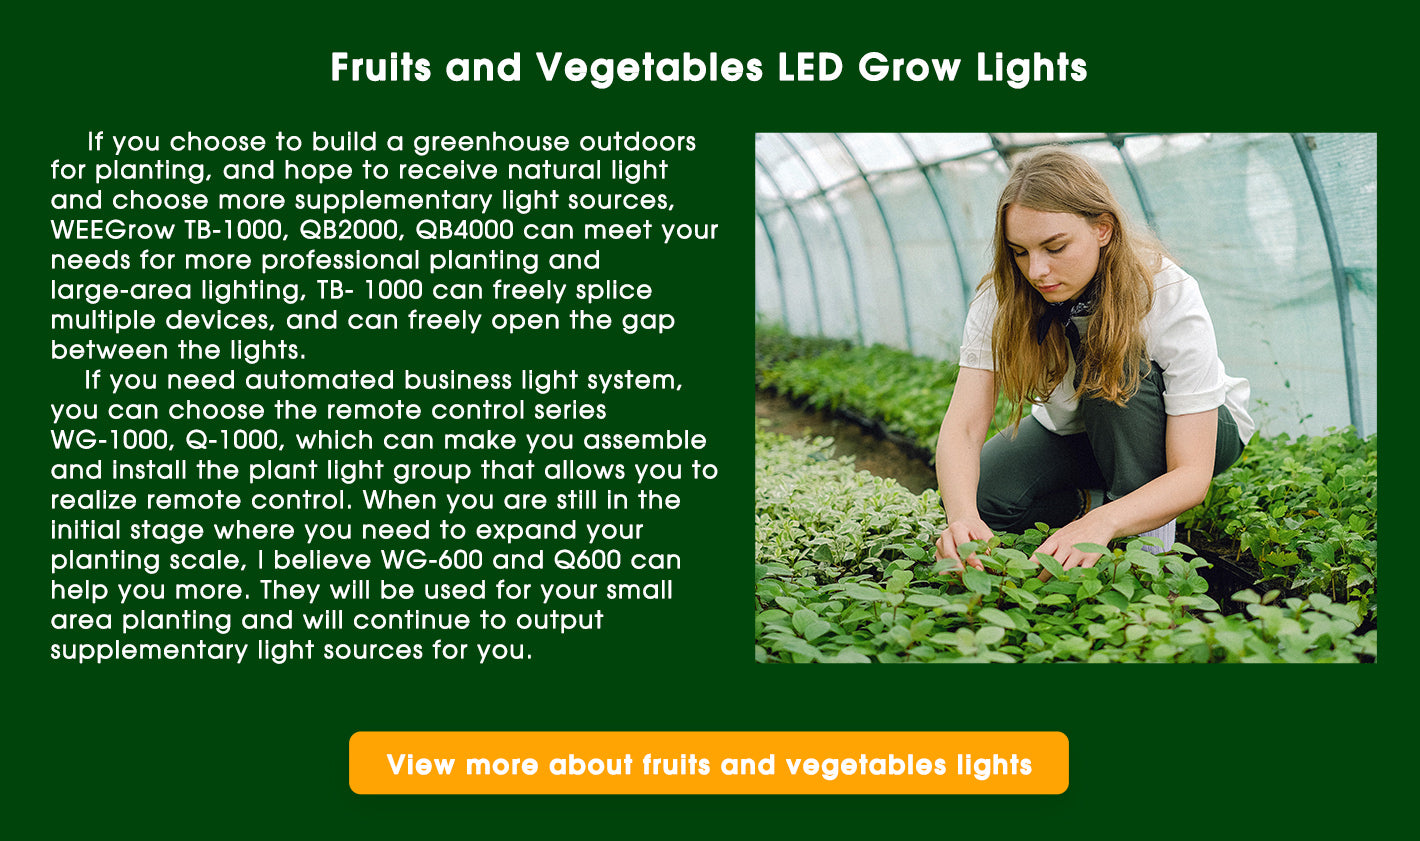 WEEGrow fruits and vegetables LED grow lights